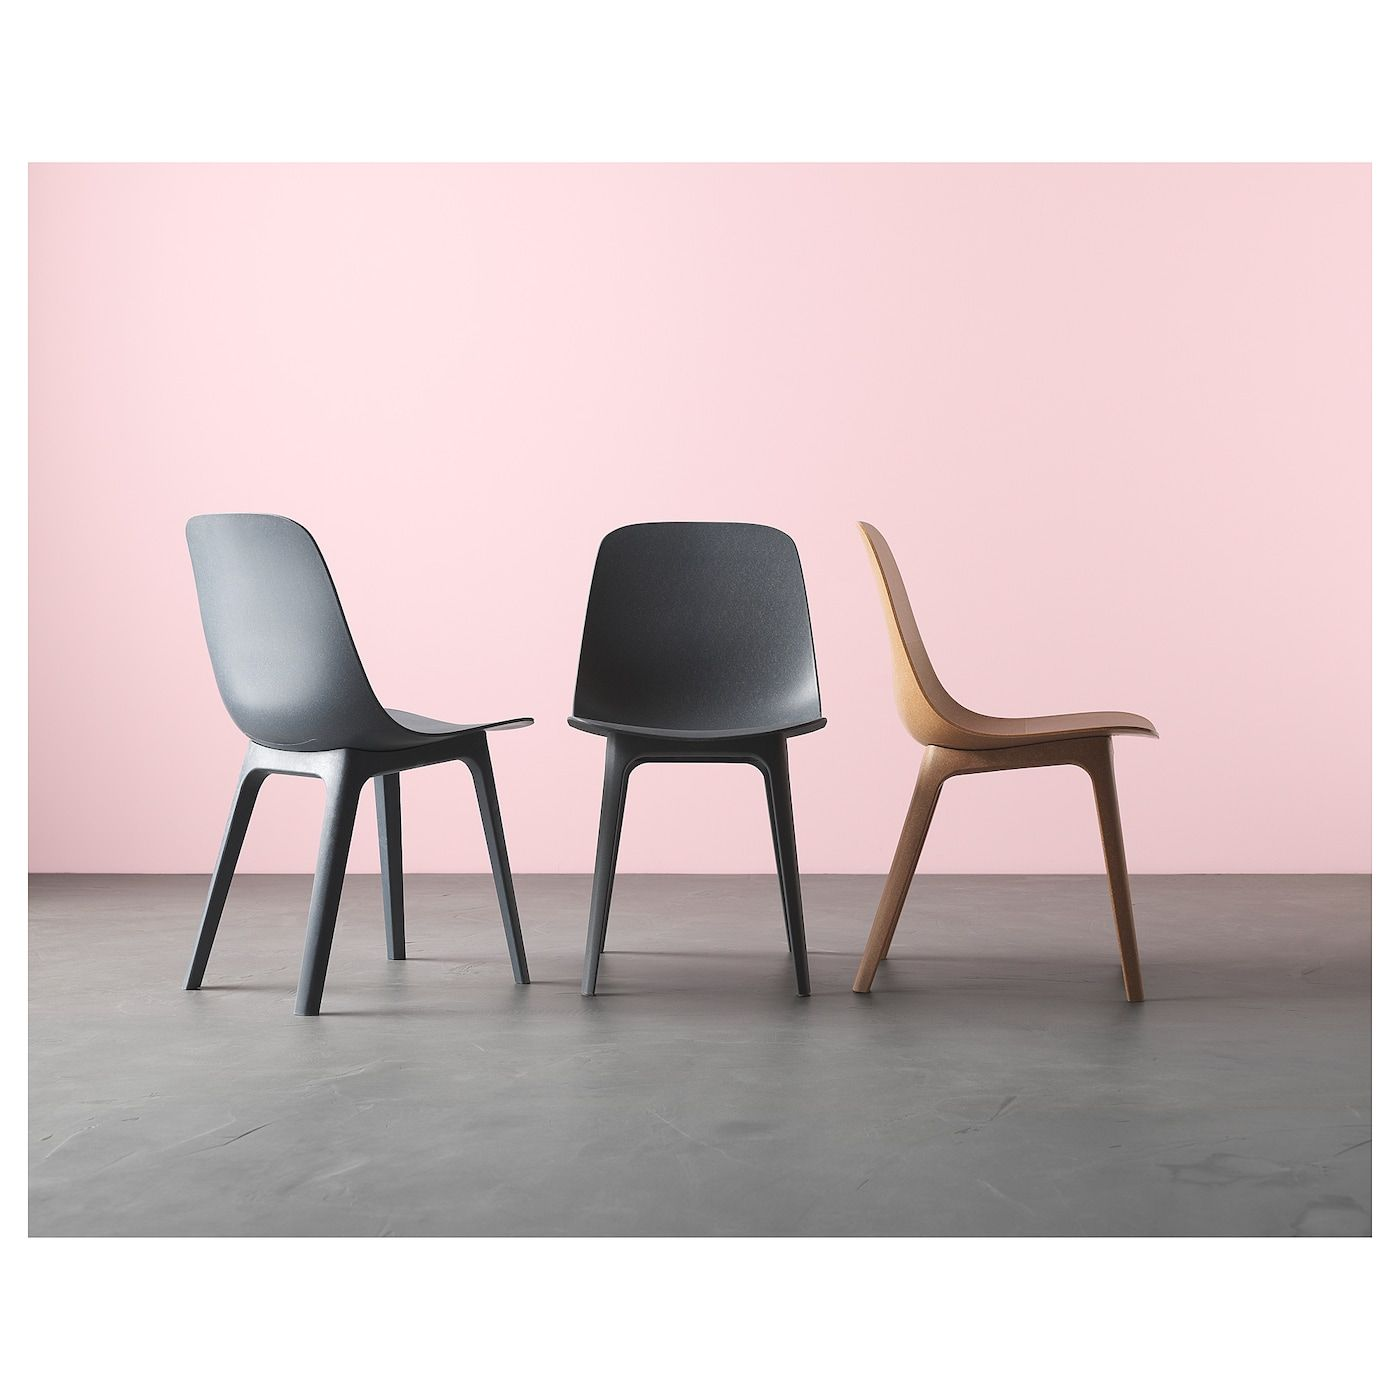 Ikea odger chair blue in 2020 ikea chair chair small